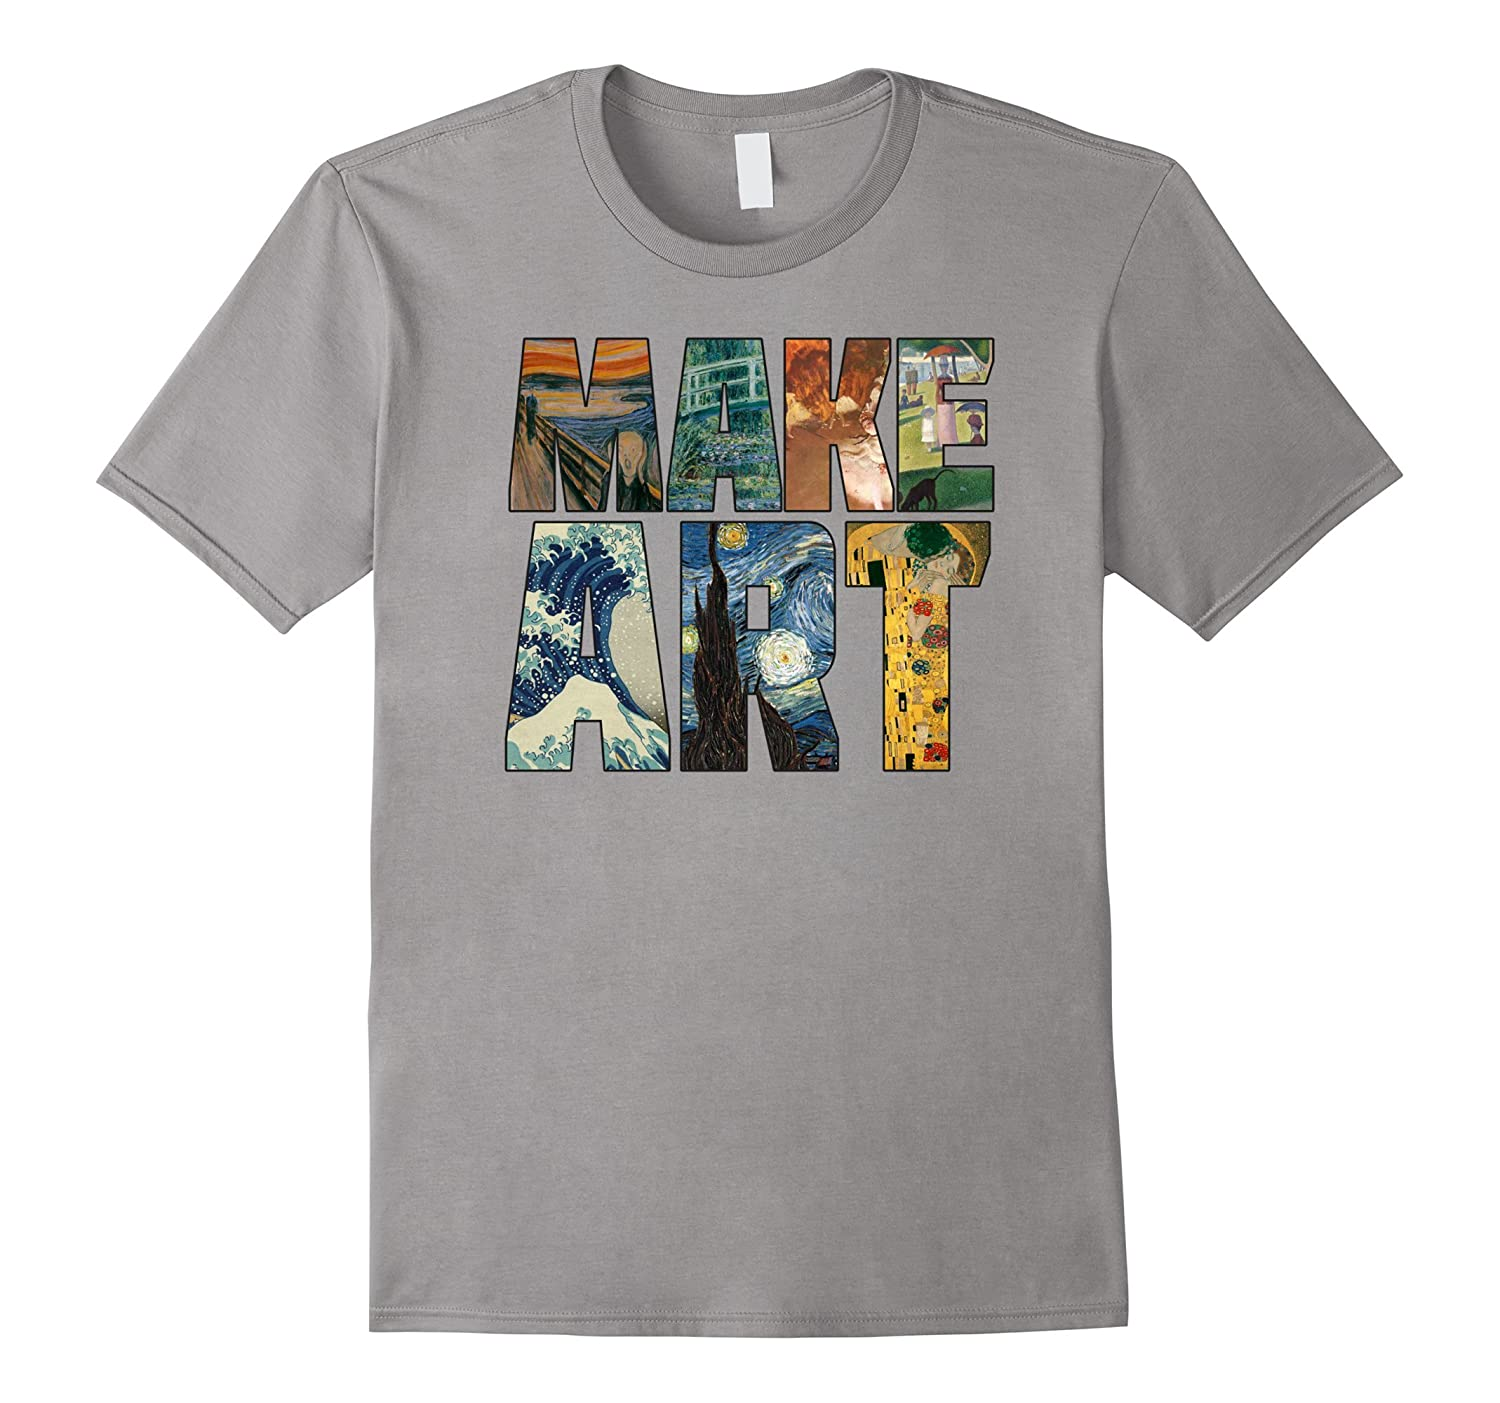 MAKE ART | Funny Artist Artistic Humor Painting Cool T-shirt-BN